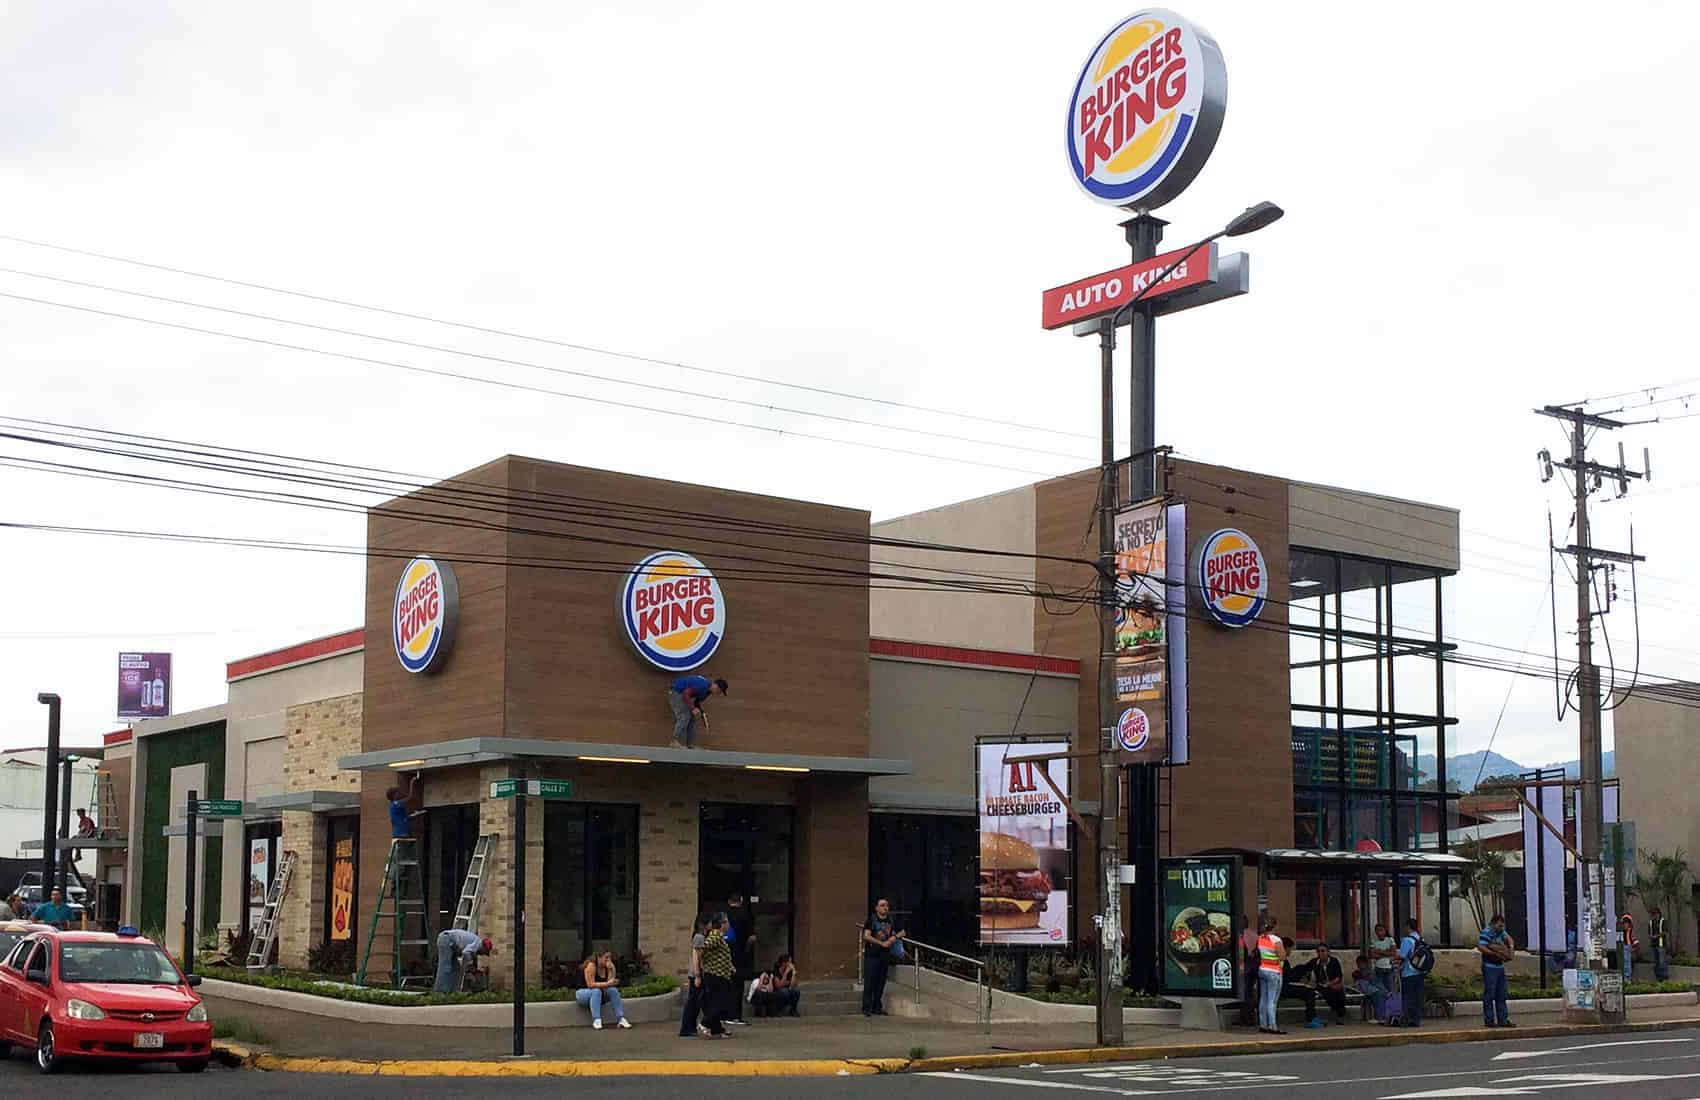 Burger King Costa Rica reopening. June 15, 2016.